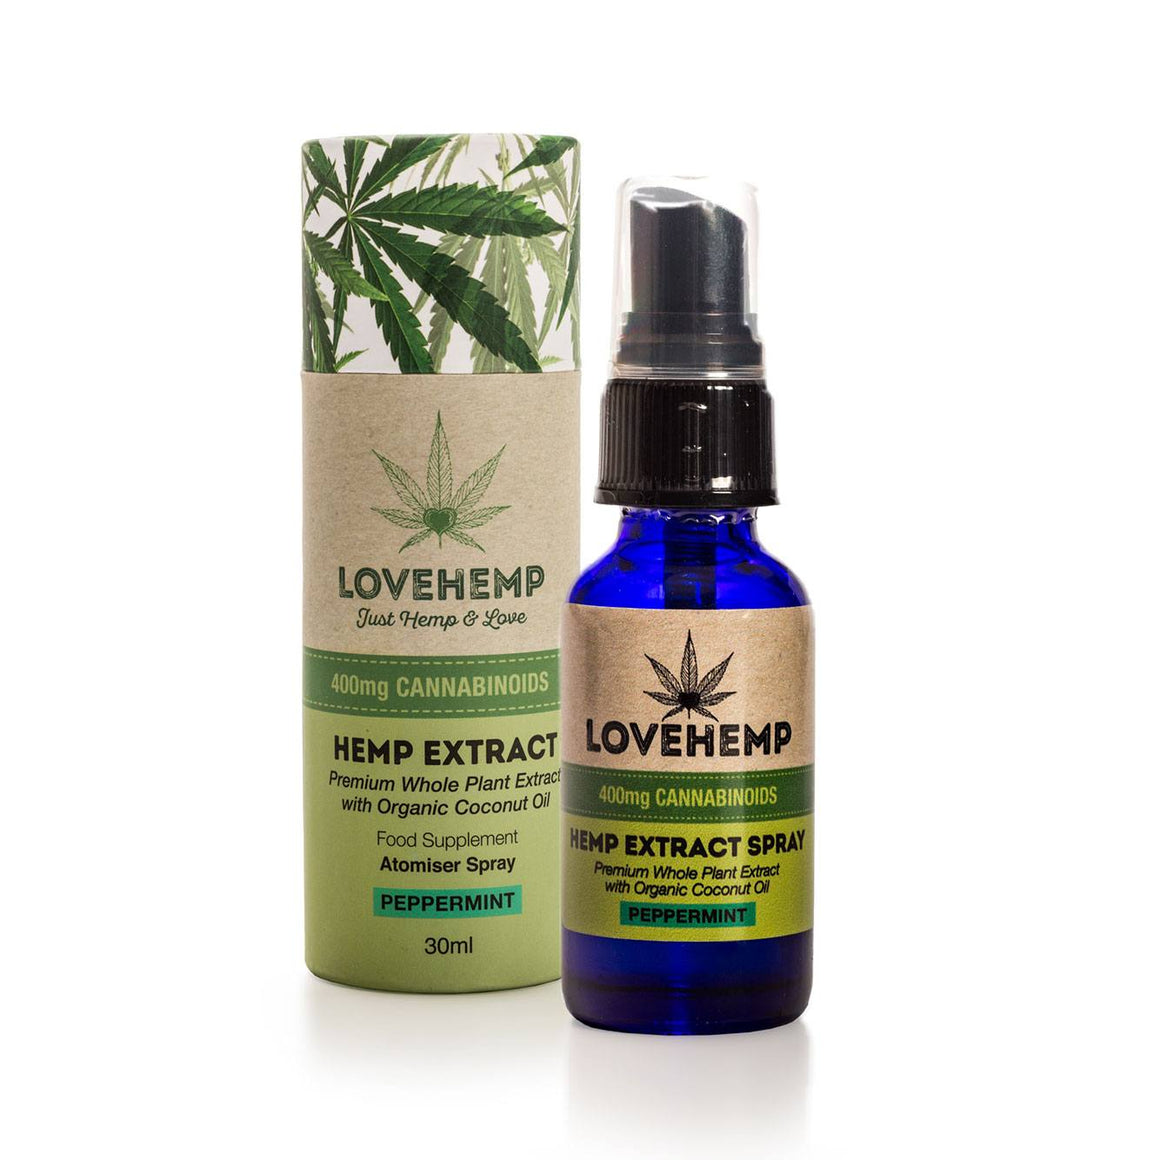 Love Hemp 400mg 30ml Oil